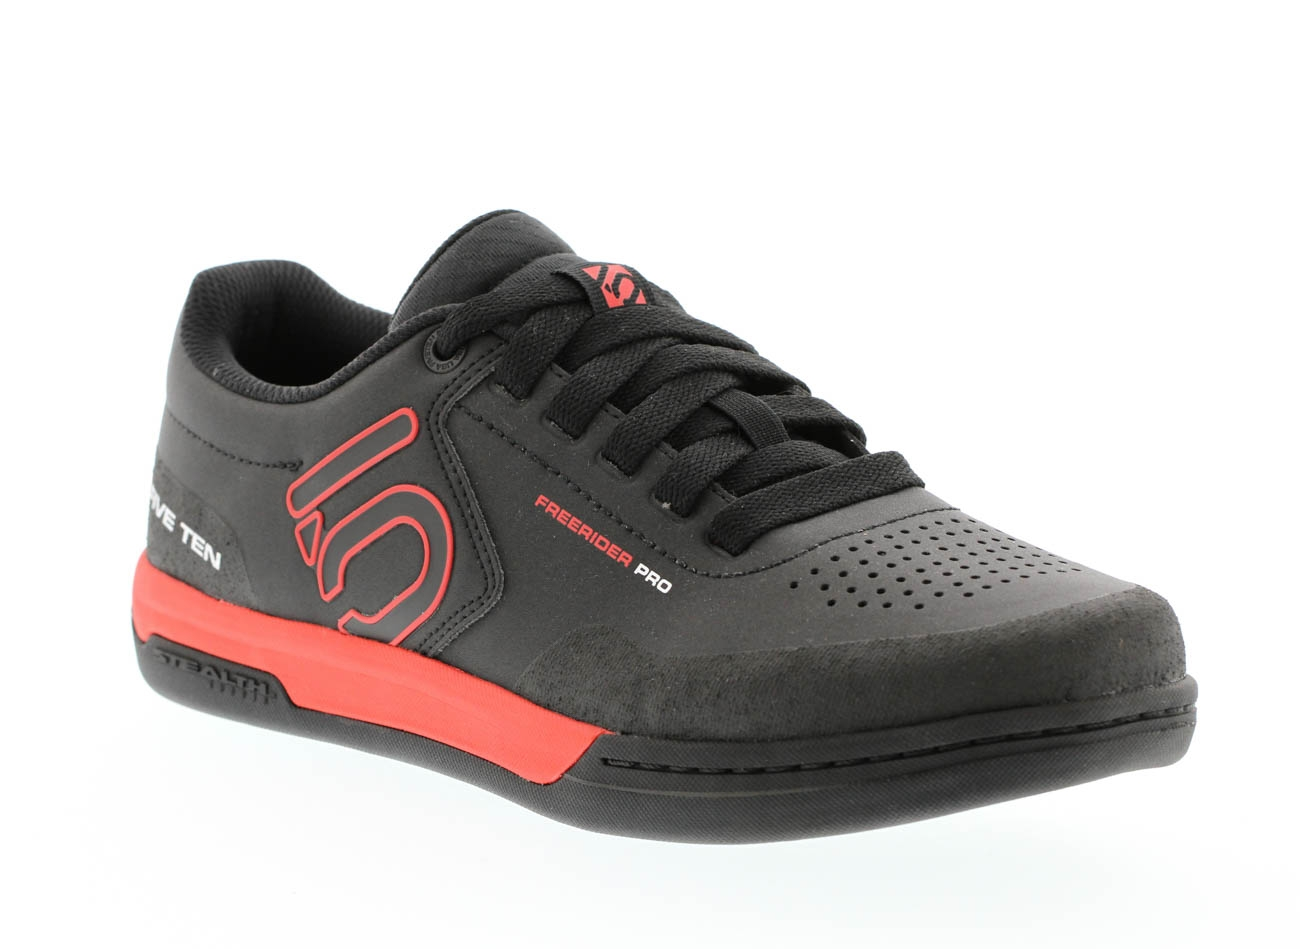 Chaussures Five Ten FREERIDER PRO Noir/Rouge - UK-8.0 (42.0)